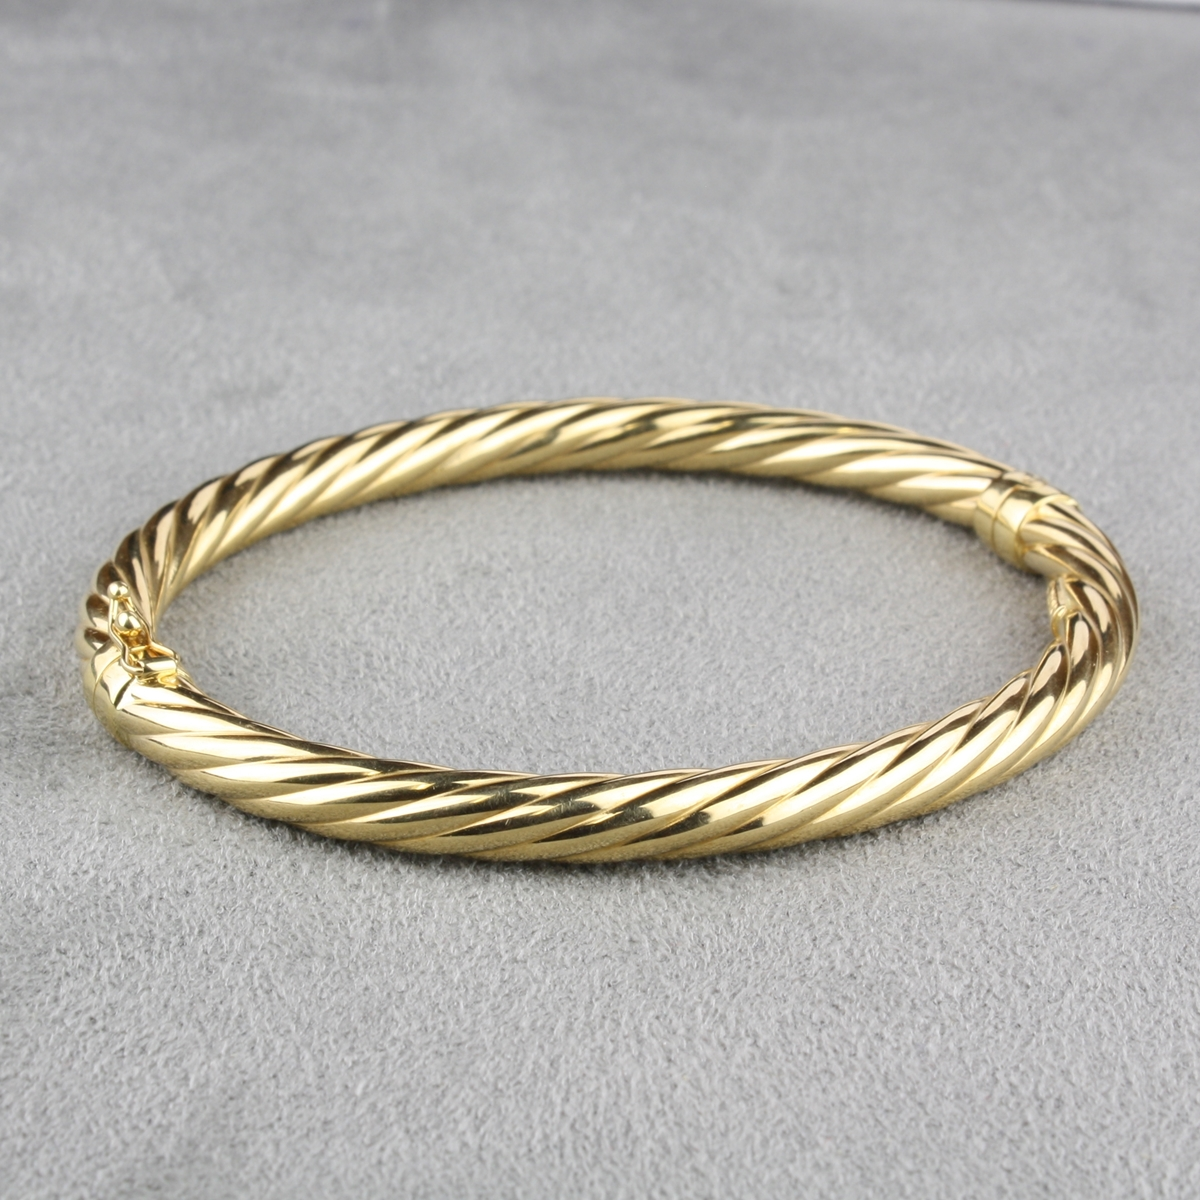 gold in bracelets karat bracelet tapered yellow bangles bangle